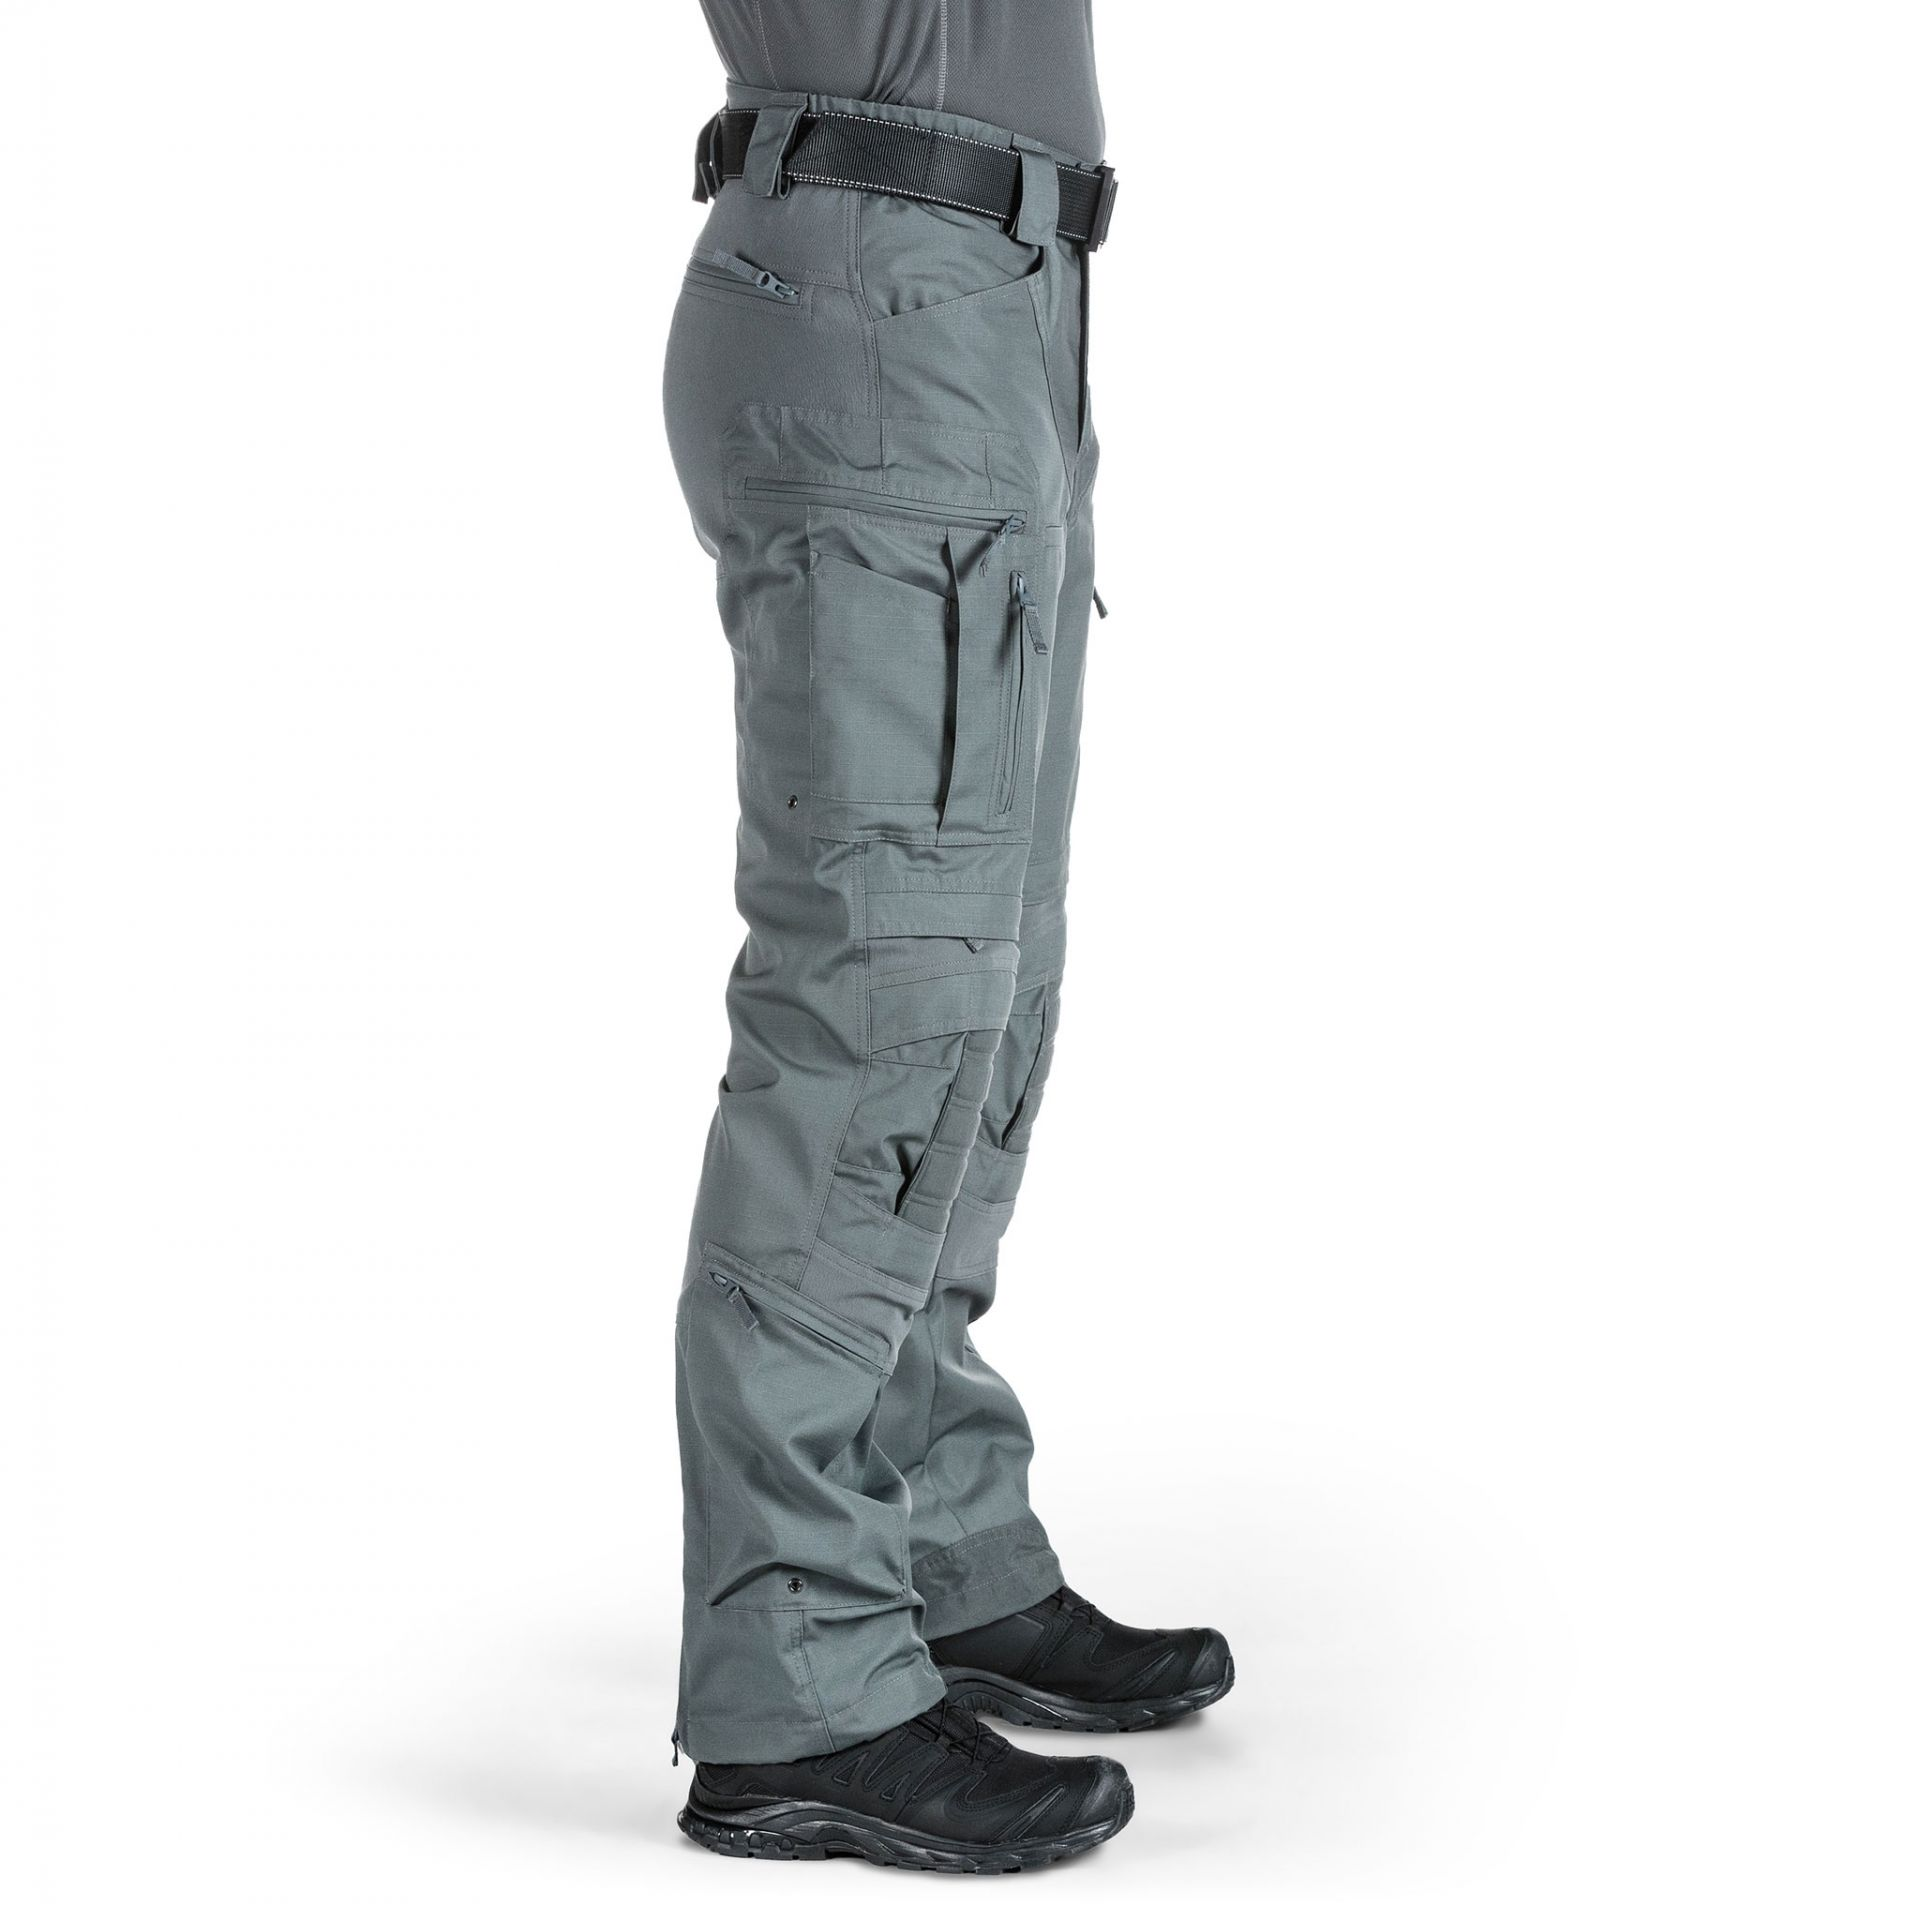 0a4941c7 Striker XT Gen.2 Combat Pants